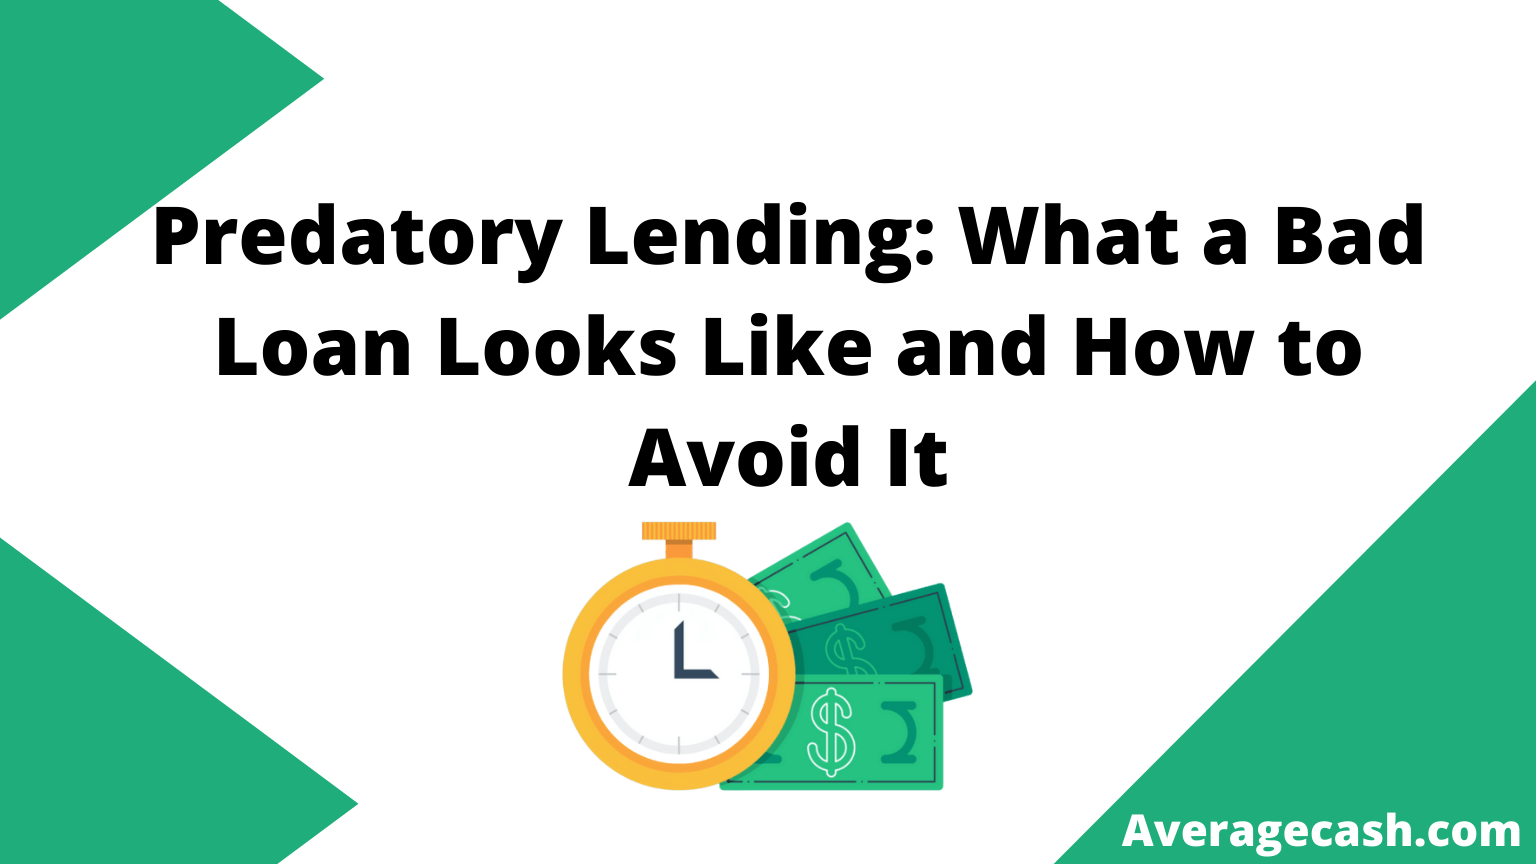 Predatory Lending What a Bad Loan Looks Like and How to Avoid It, August 2021